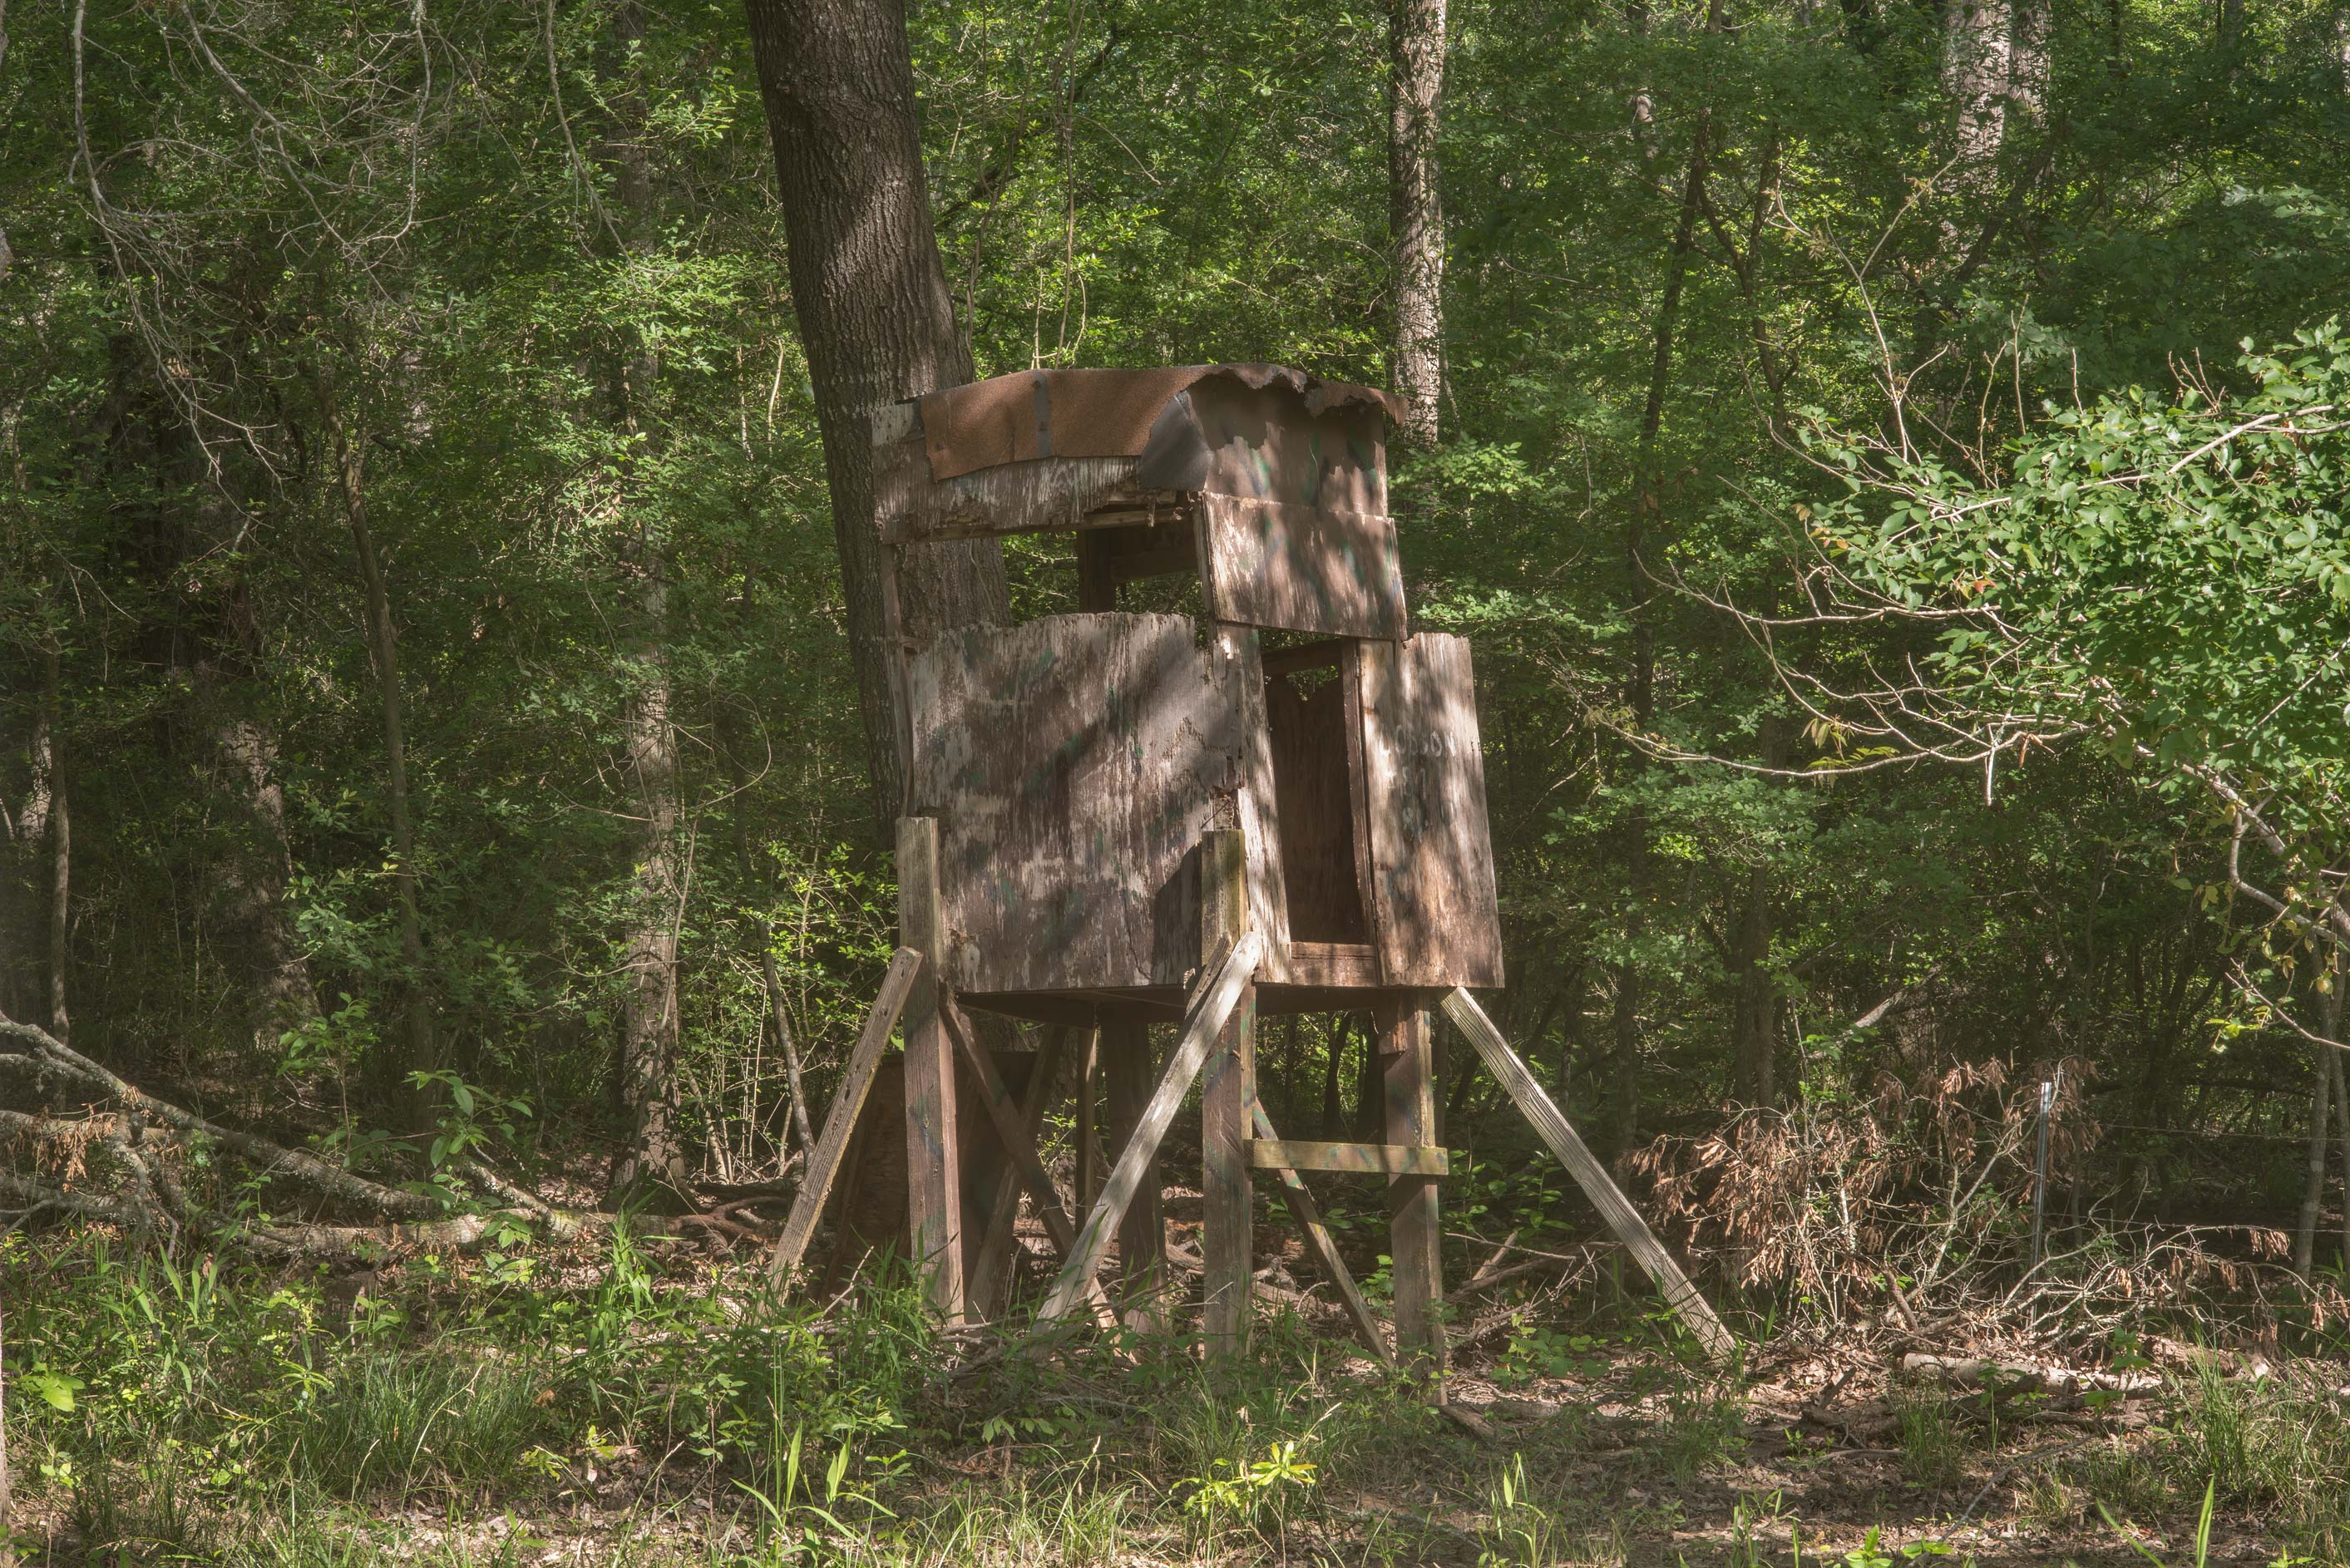 Hunter's cabin in Lick Creek Park. College Station, Texas